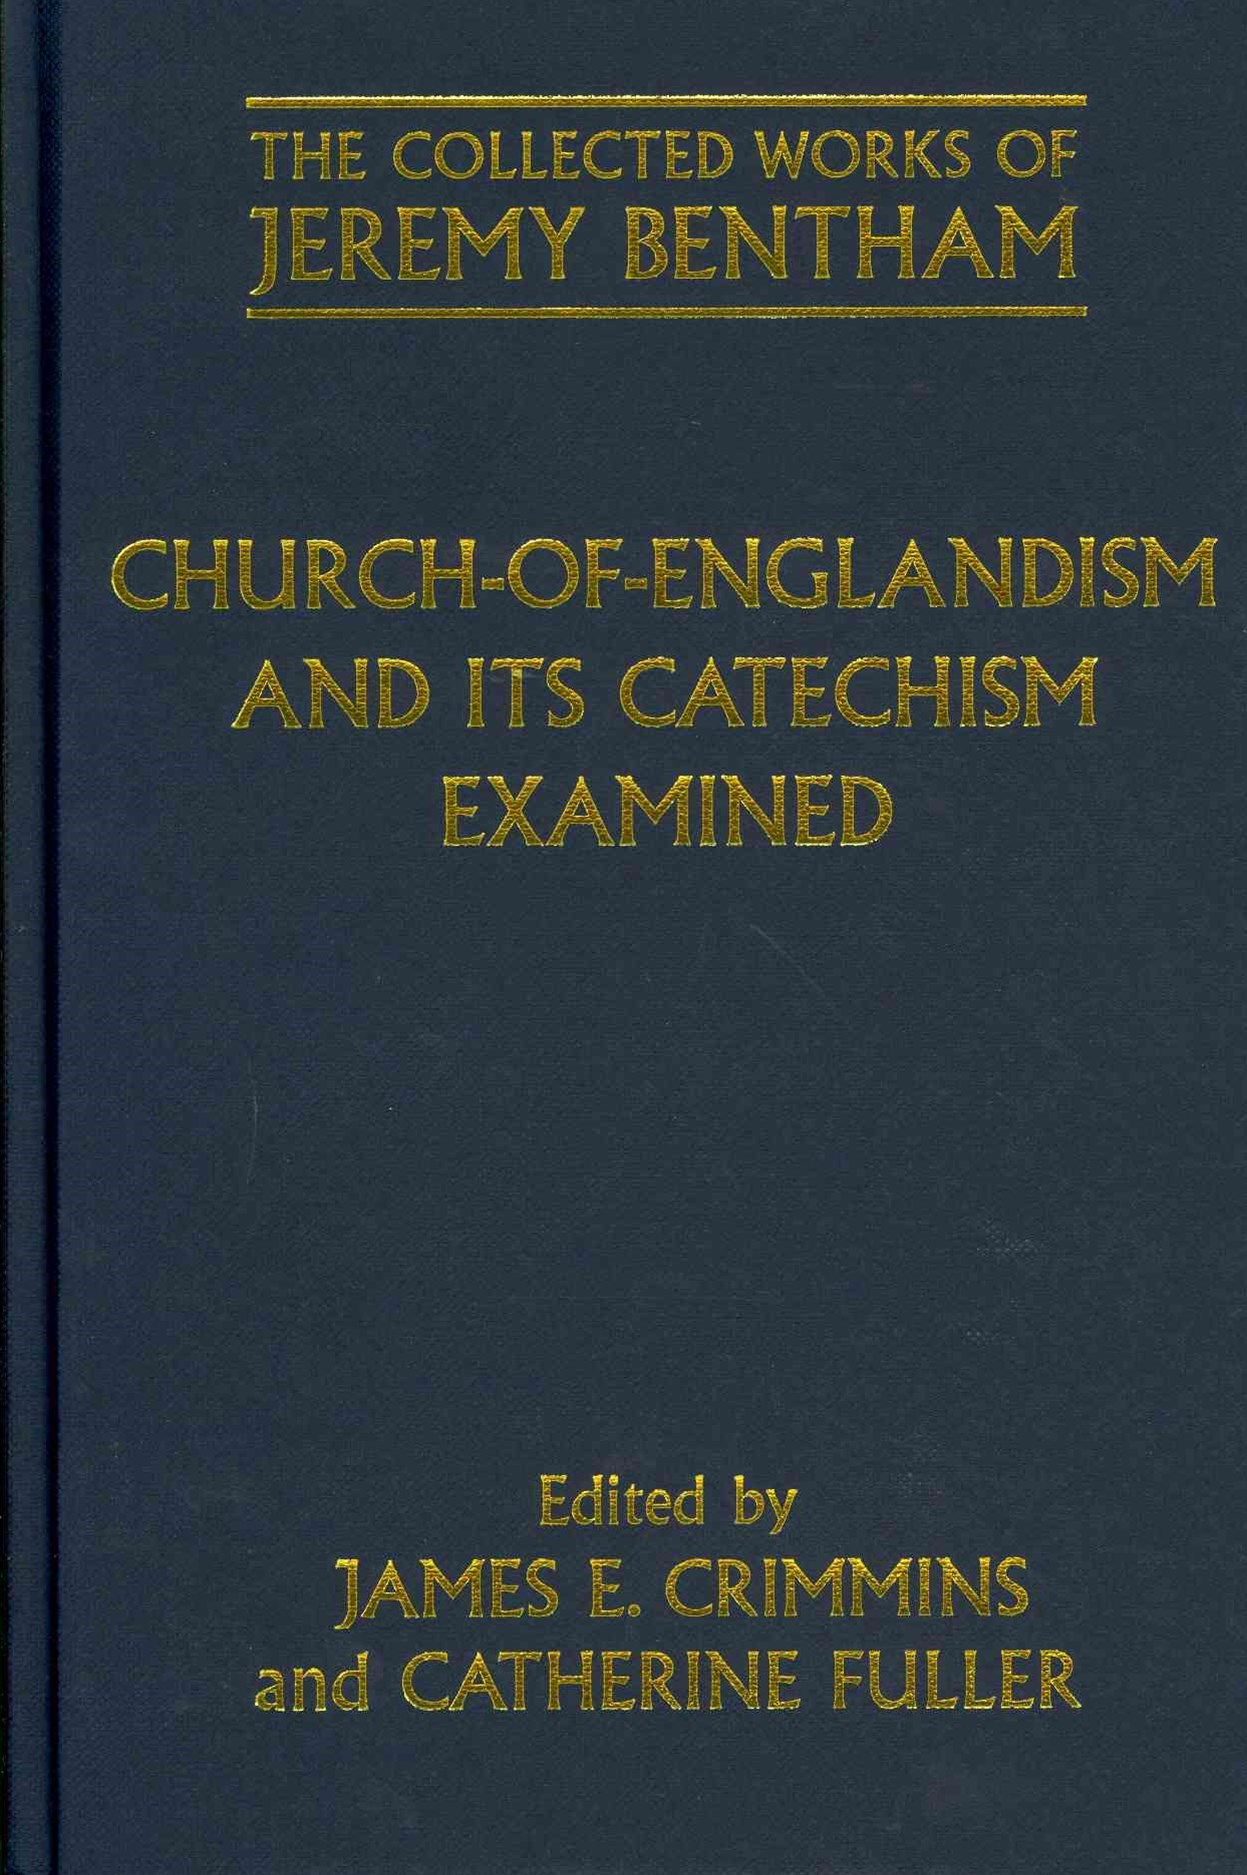 Church-of-Englandism and its Catechism Examined